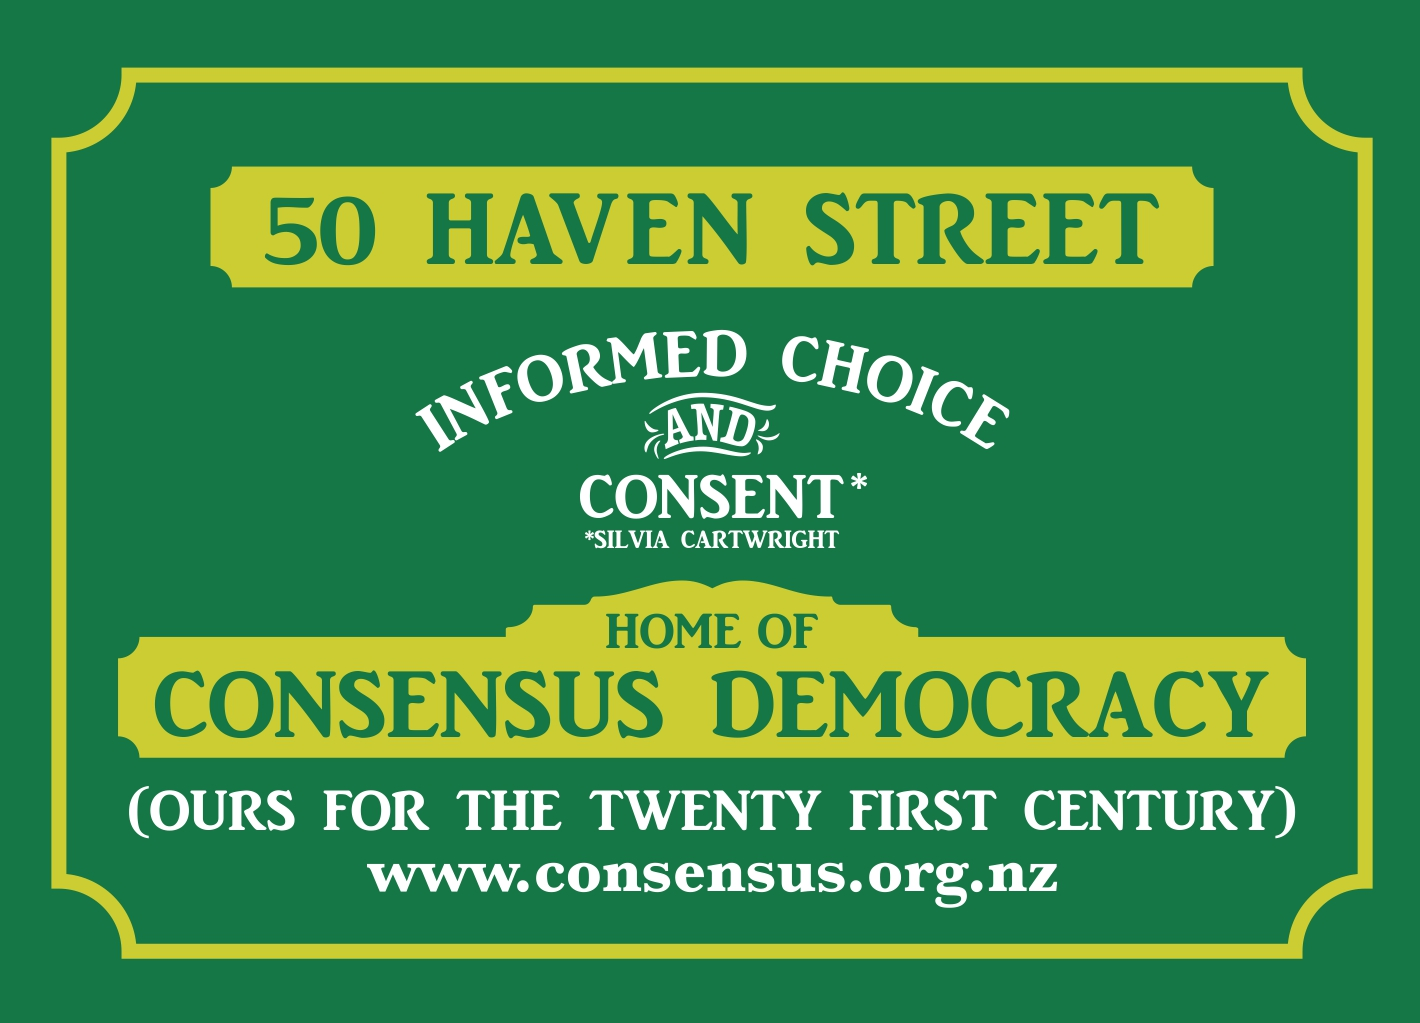 Consensus Democracy